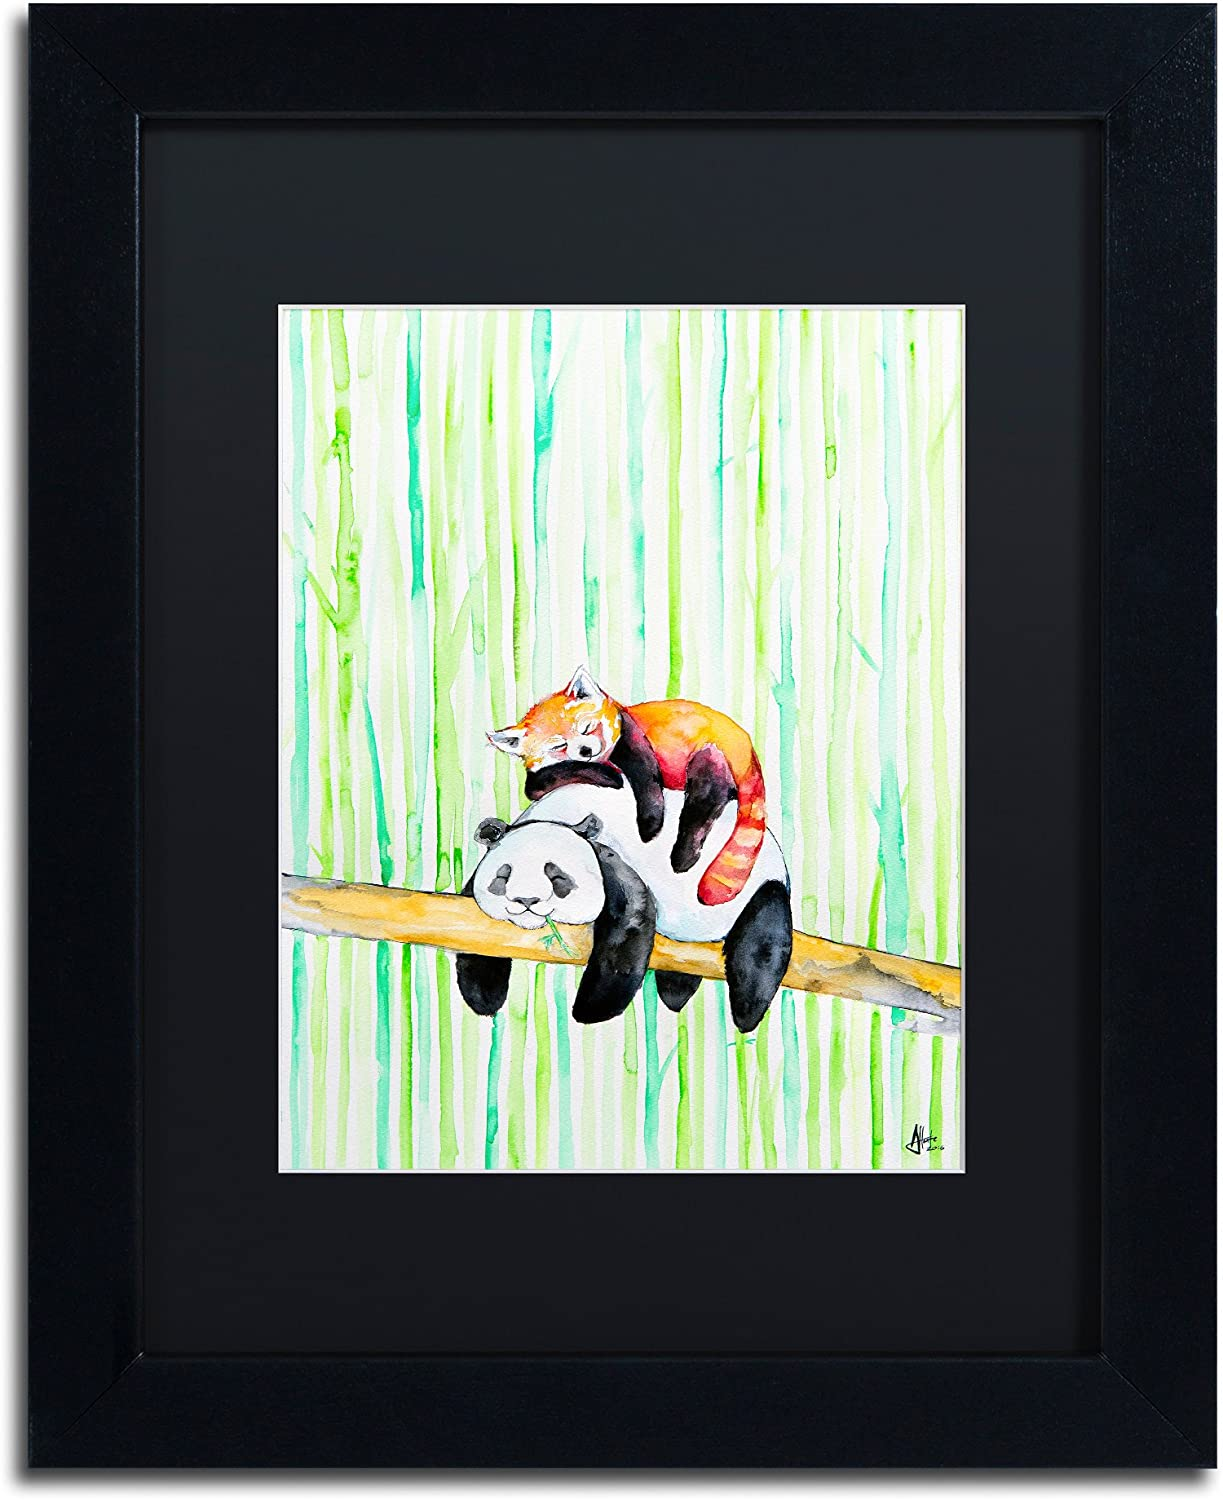 Lullaby by Marc Allante, Black Matte, Black Frame 11x14Inch